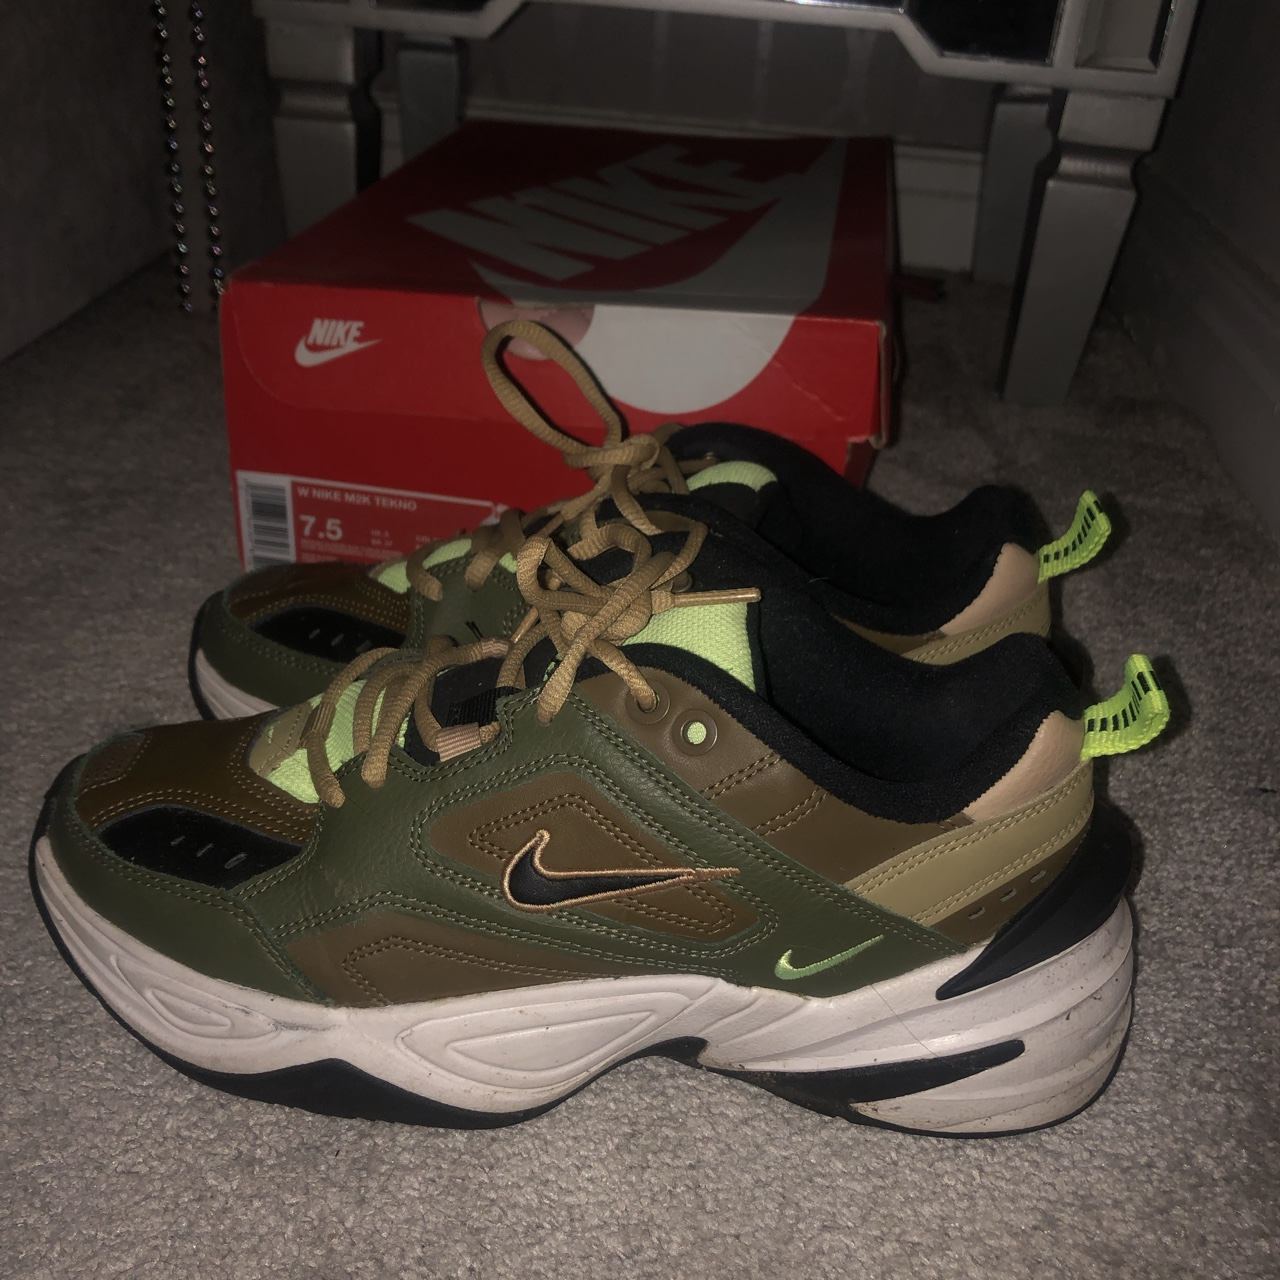 san francisco 100% quality quite nice Khaki and neon green Nike m2k tekno trainers size... - Depop